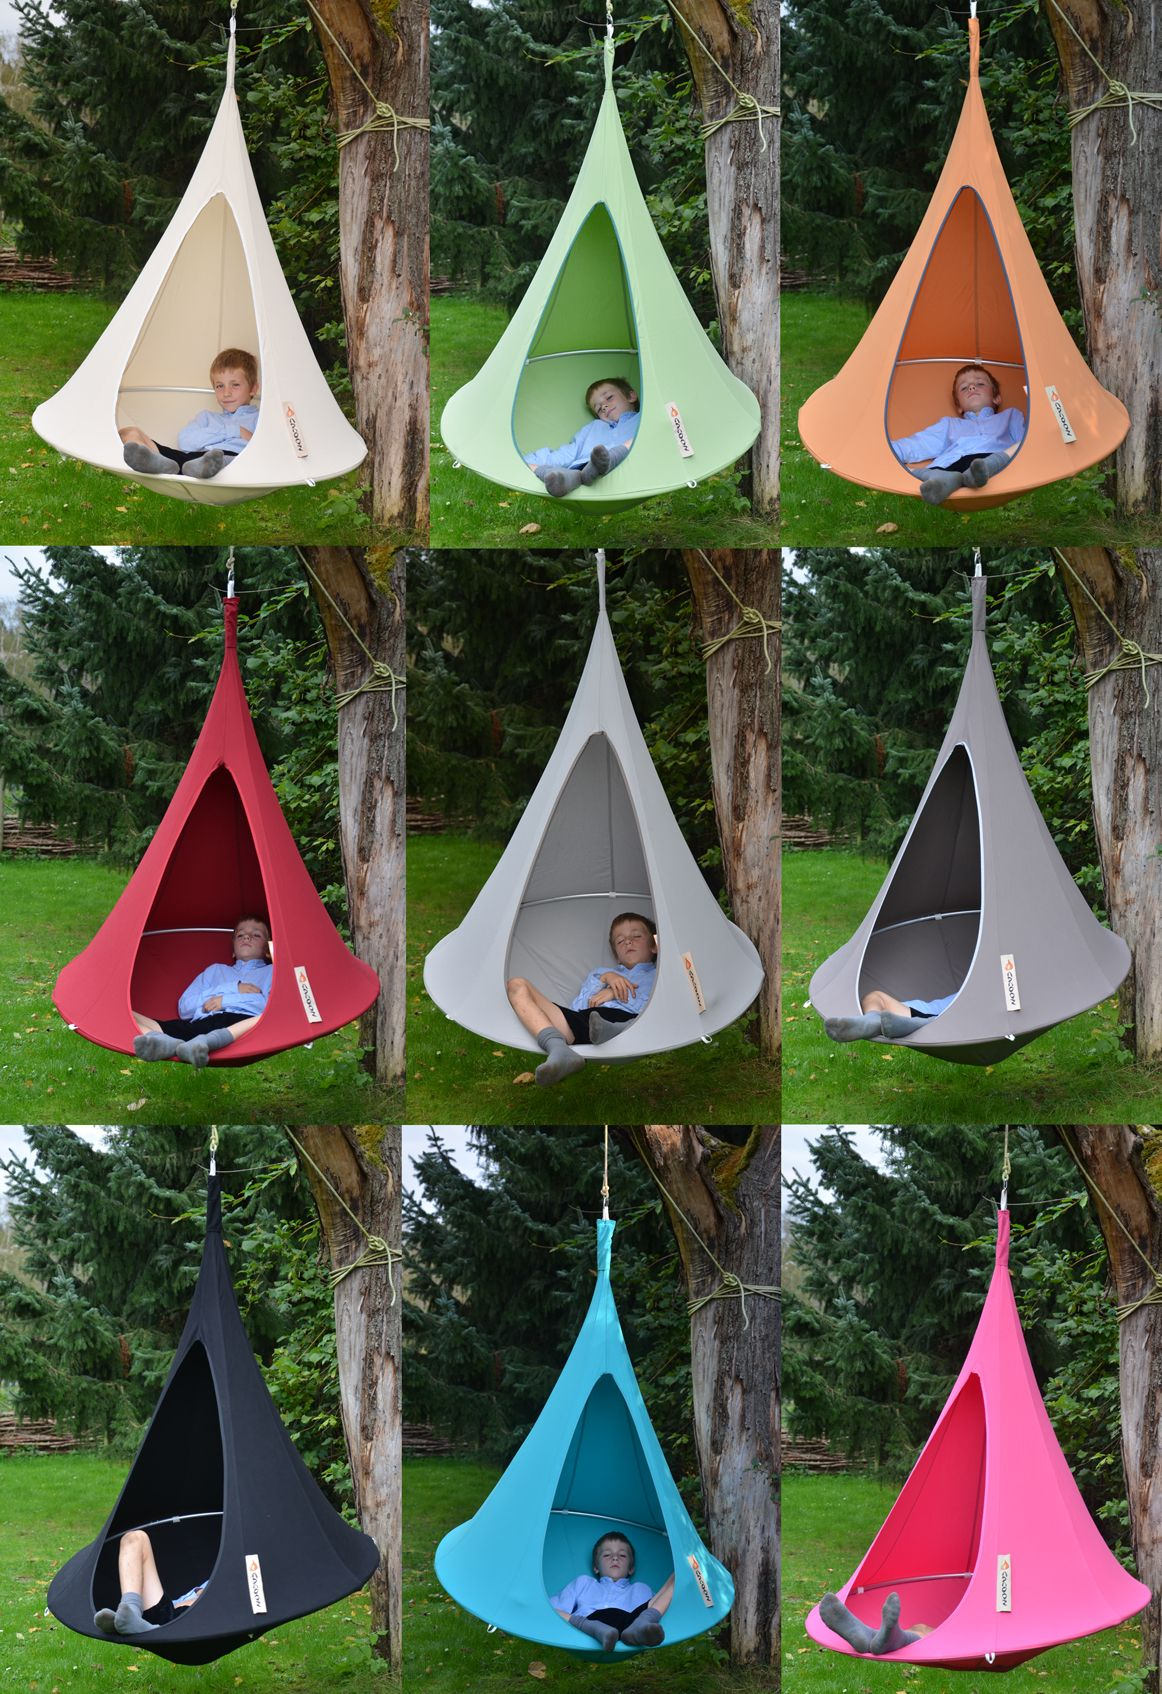 Cacoon Cacoon Bonsai In 2019 Hammocks Hanging Tent Backyard